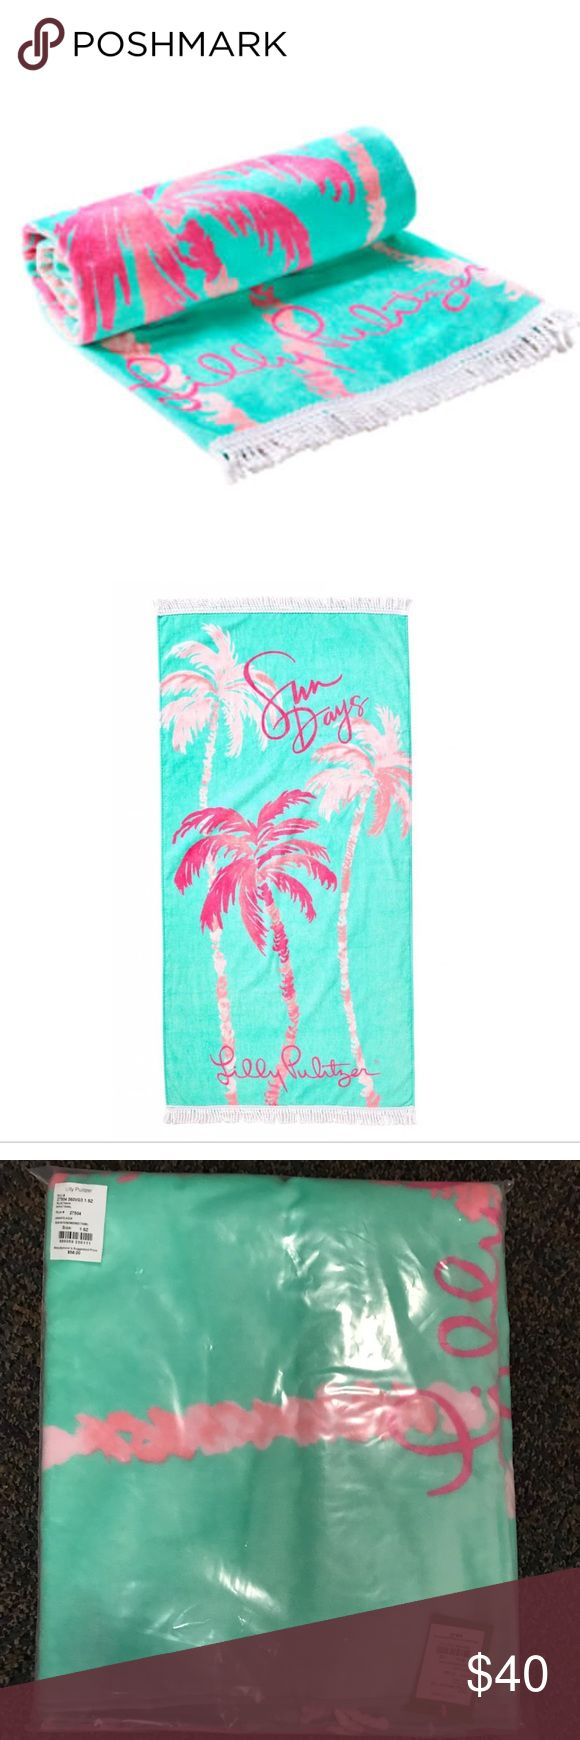 "Lilly Pulitzer Boho Towel Don't be boring with a plain towel and be the talk of the beach with the Boho Towel. Engineered and full of color for the sunniest of days.   Printed Towel With Fringe Trim. Measures 30""W X 60""L. Velour Terry. Machine Wash Cold. Imported. Lilly Pulitzer Accessories"